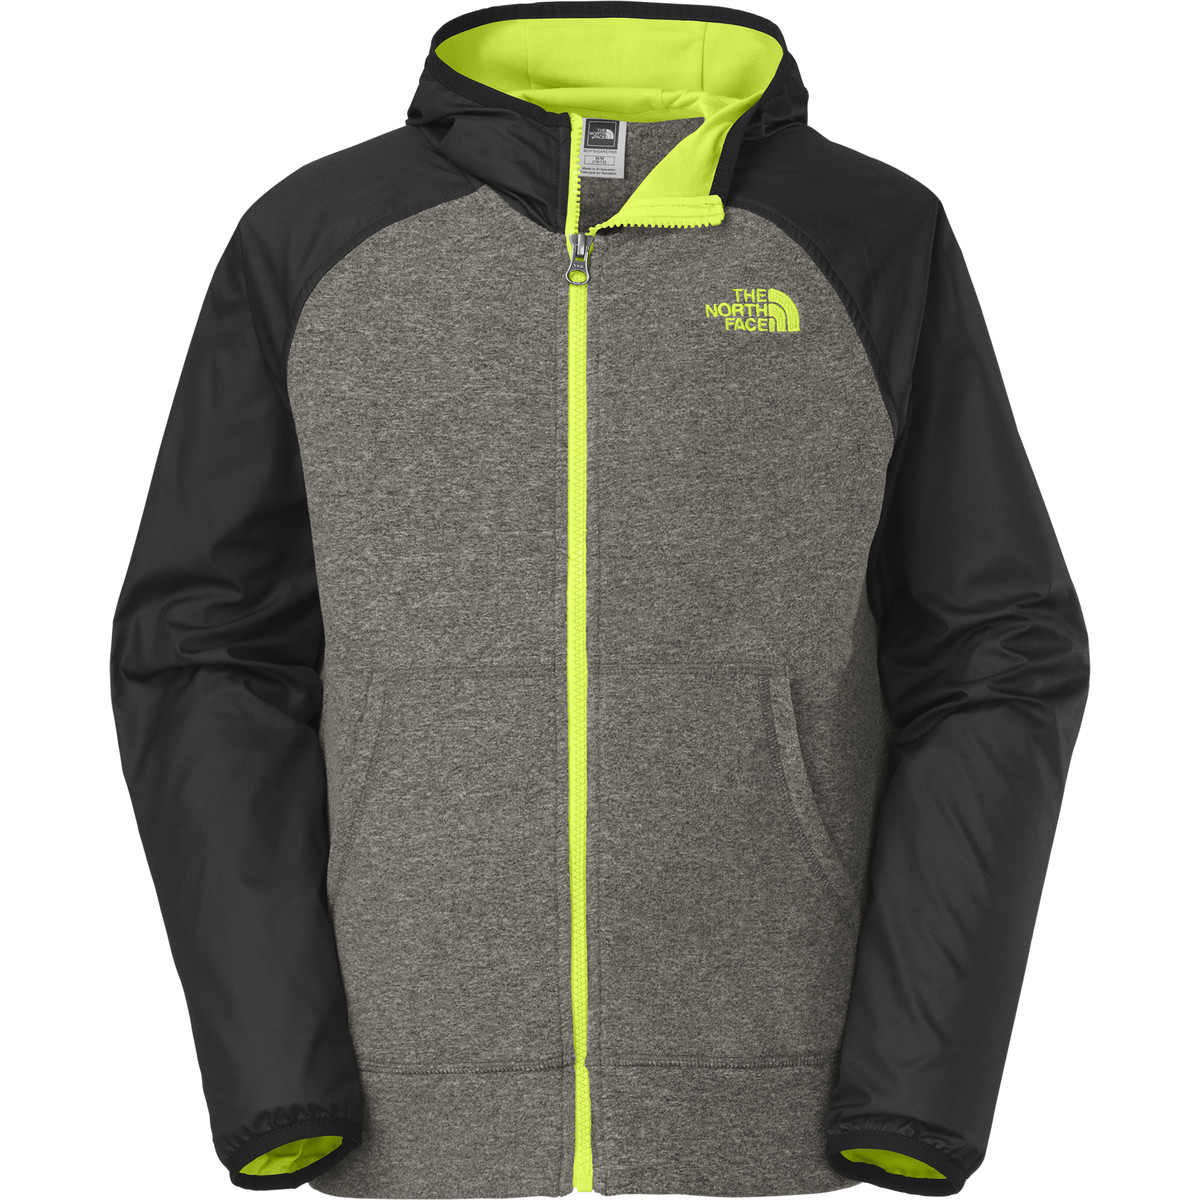 The North Face Glacier Track Full Zip Hoodie